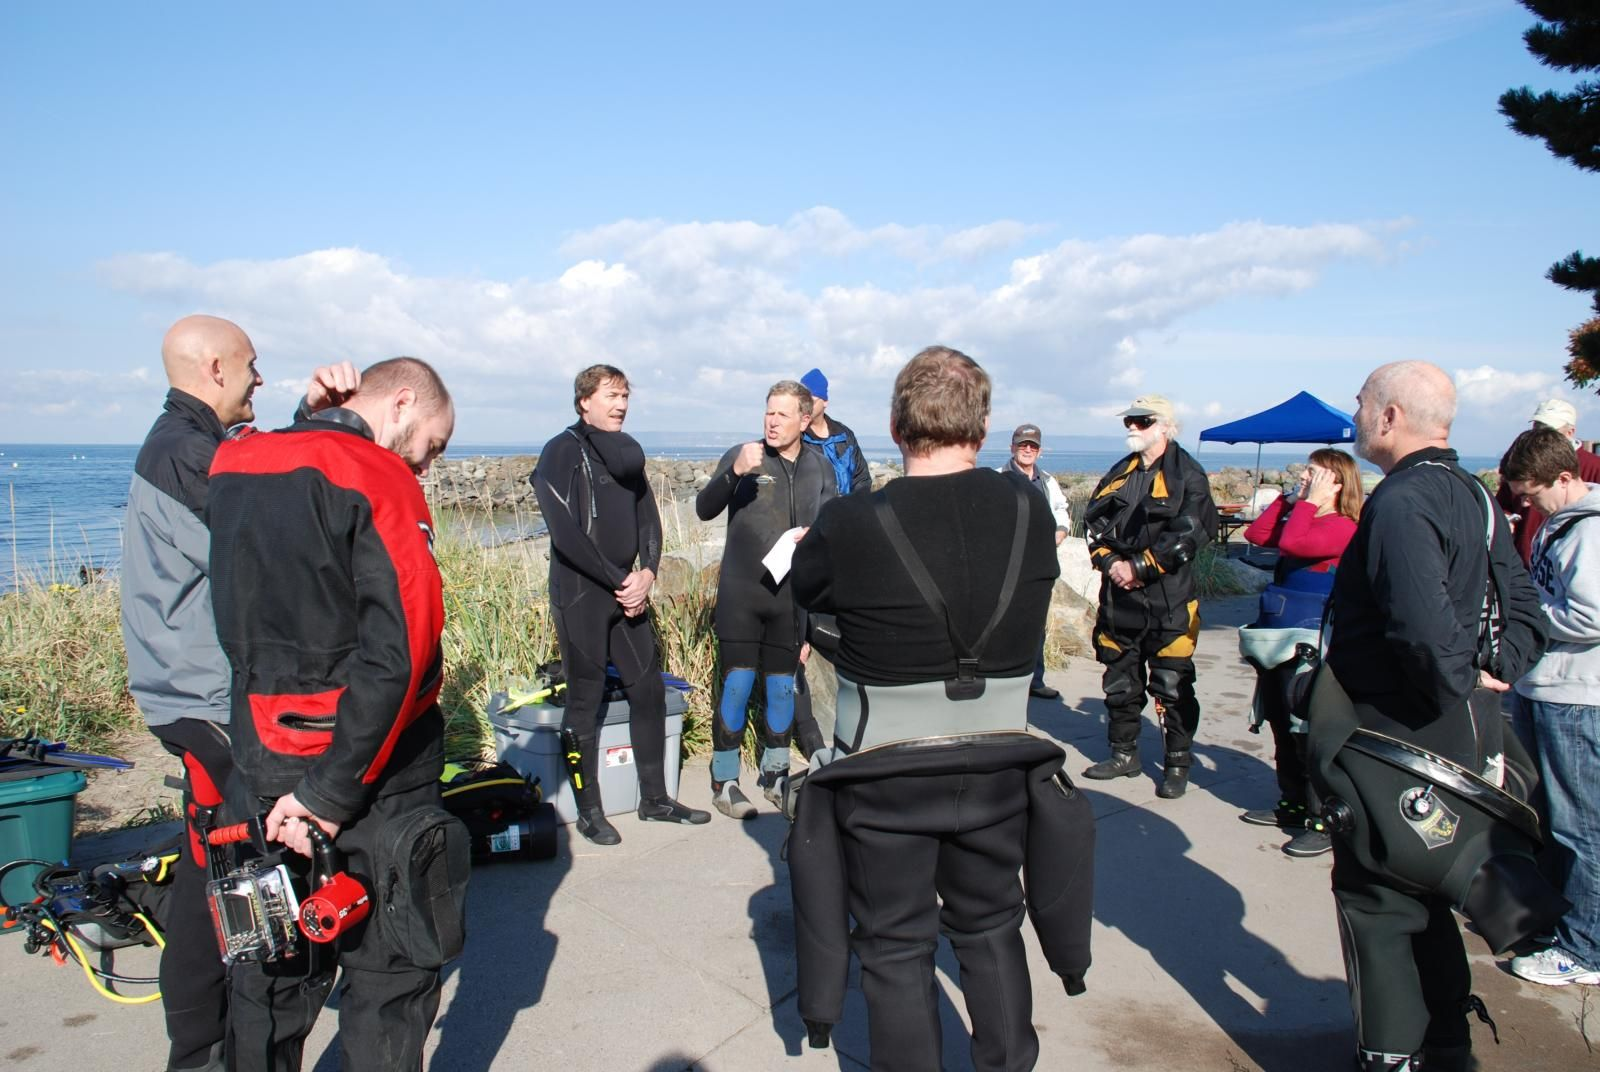 Briefing the divers on contest rules and safety